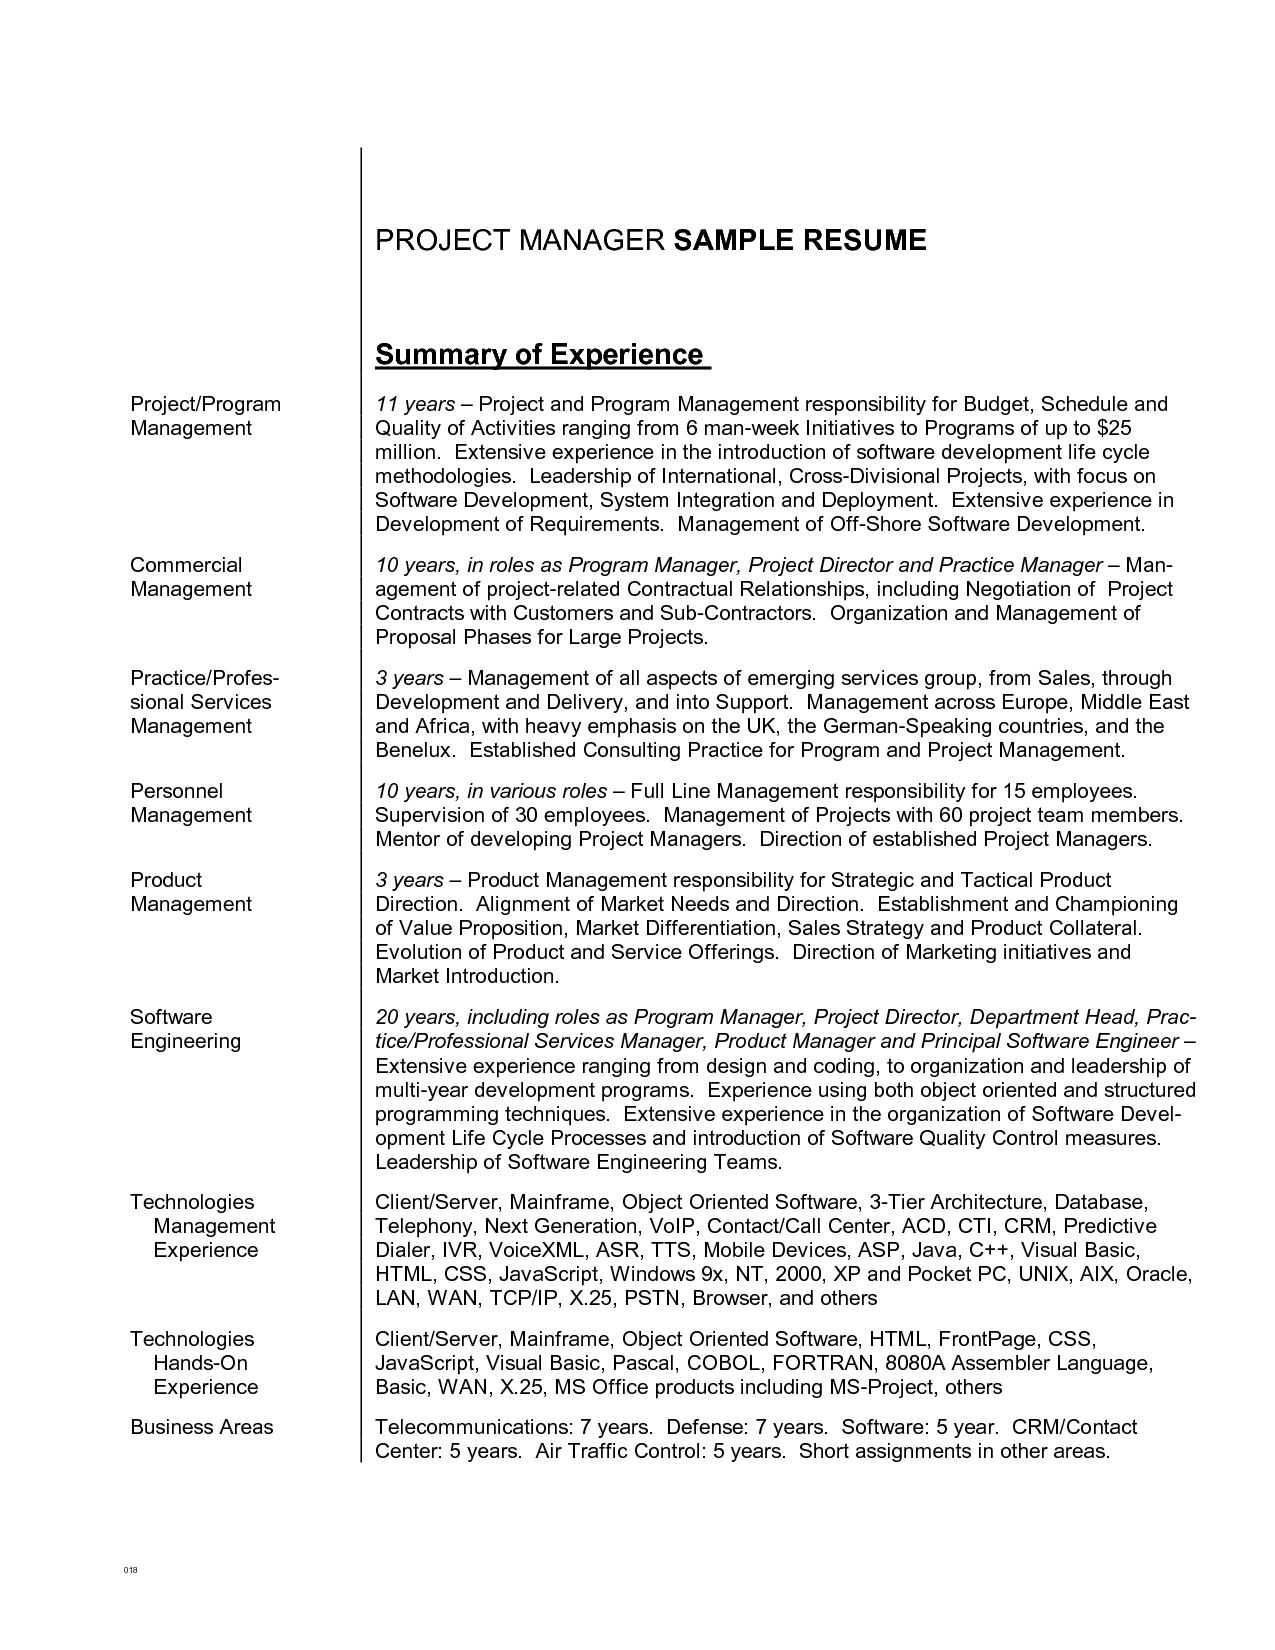 Cad Administrator Sample Resume Inspiration Summary On Resume Examples  Resume  Pinterest  Writing Services .